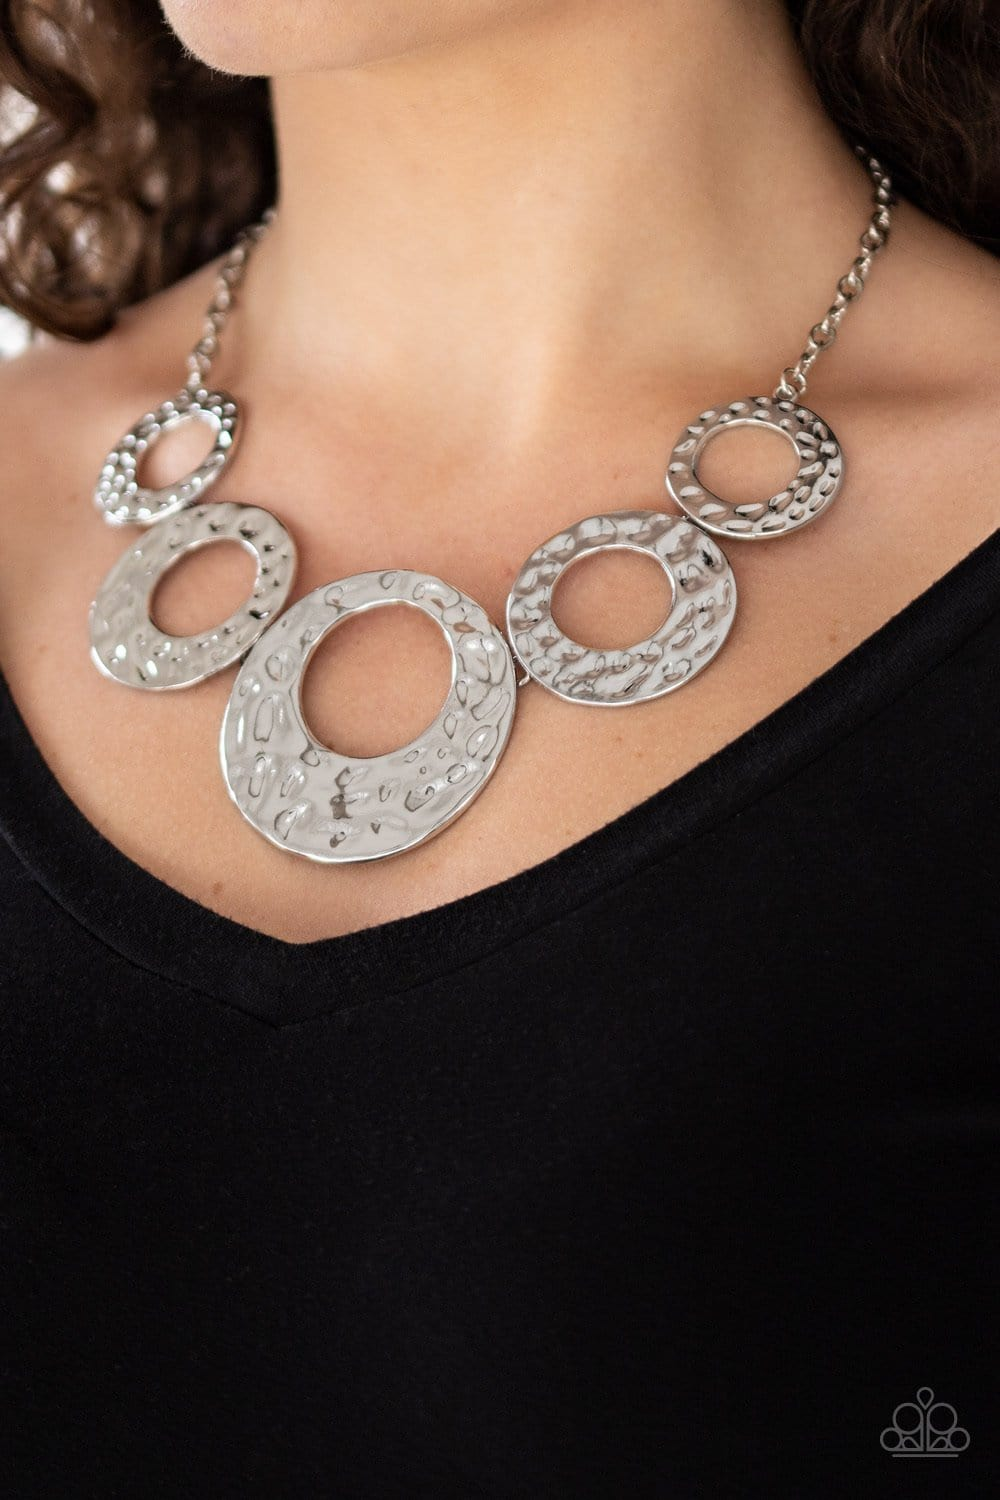 Paparazzi: Mildly Metro - Silver Necklace - Jewels N' Thingz Boutique